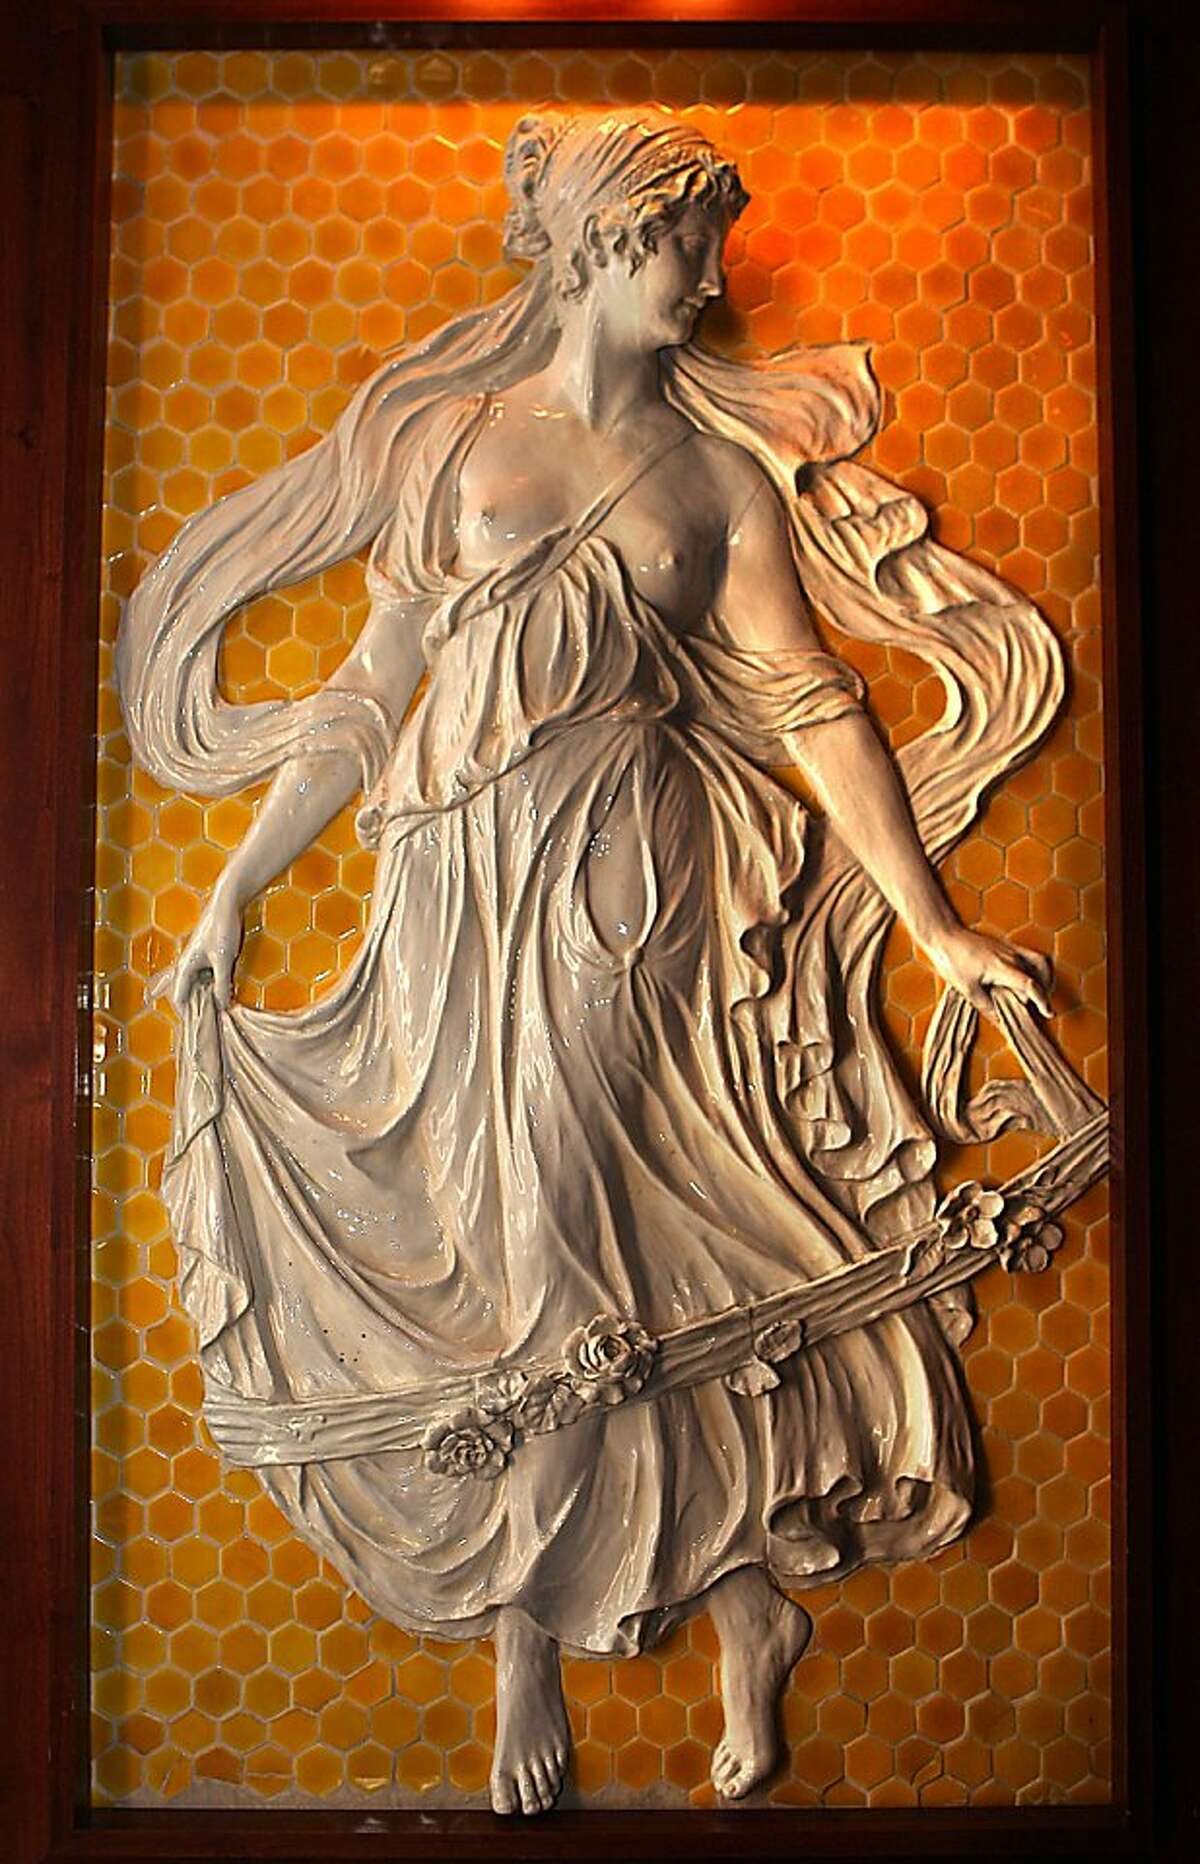 Ceramic muse originally located in Sutro baths commissioned by Adolph Sutro in the early 1890's from Italy, and is displayed at Sutro's in the Cliff house.